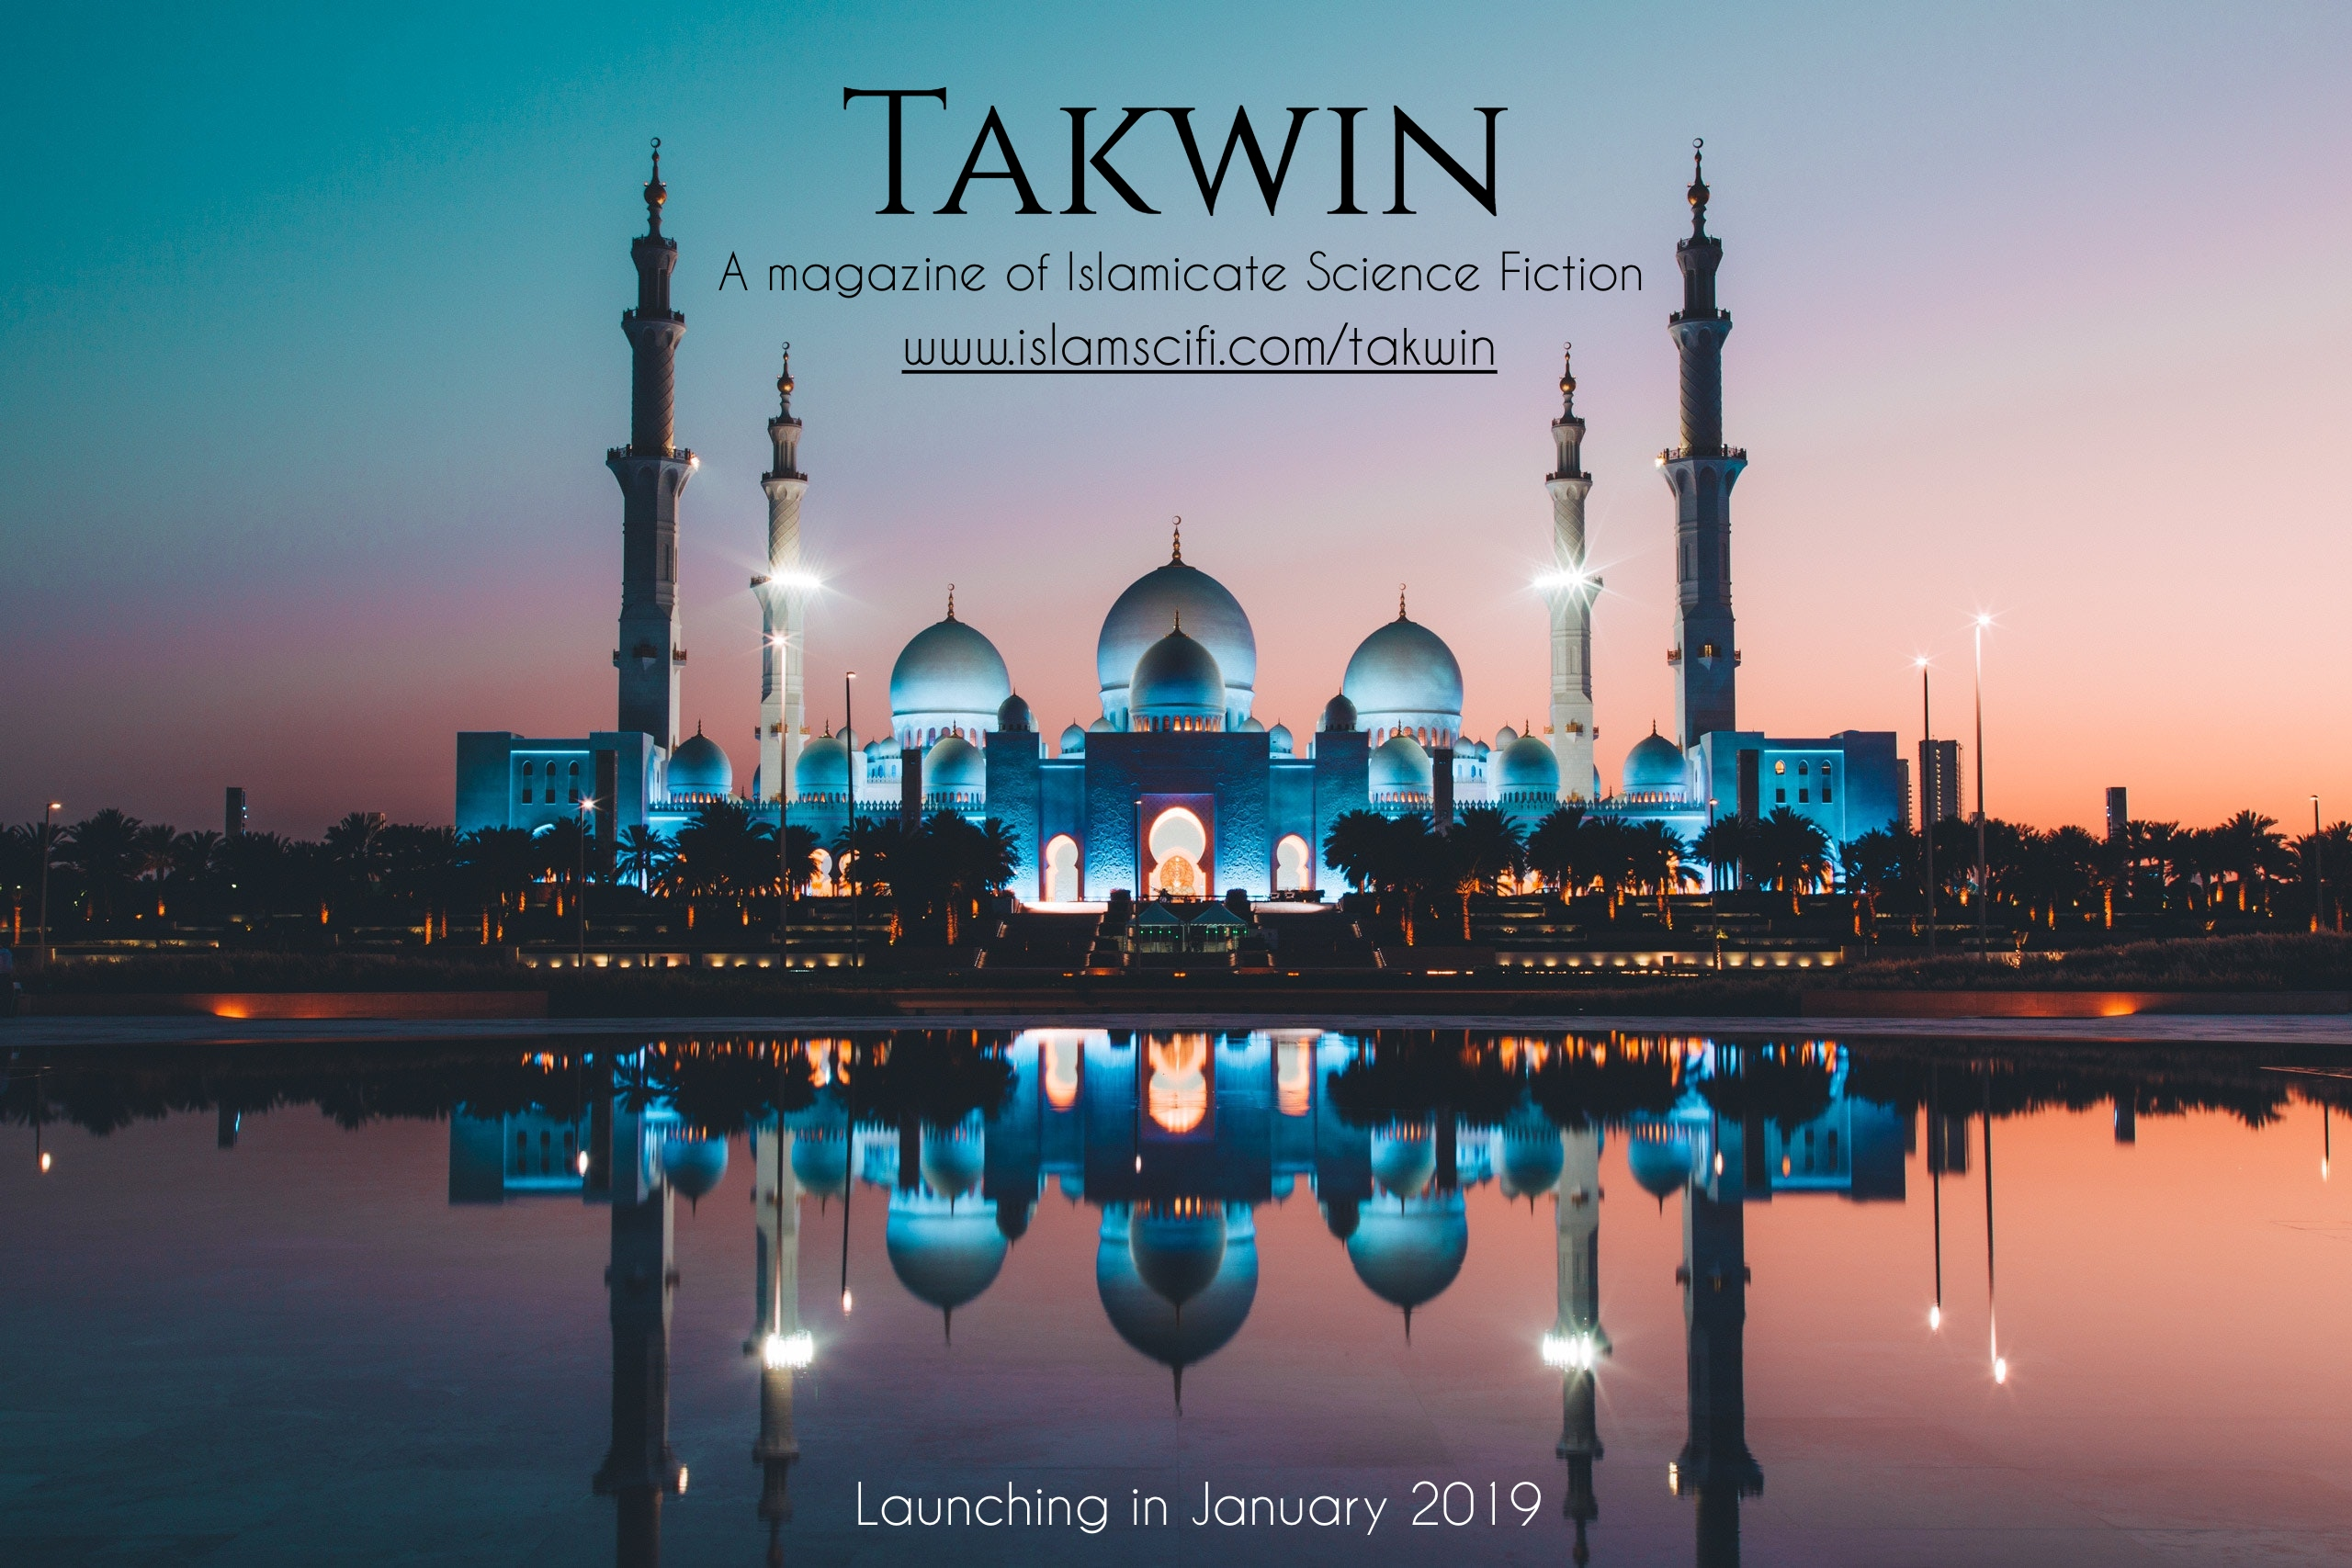 Launching Takwin - A magazine of Islamicate Science Fiction